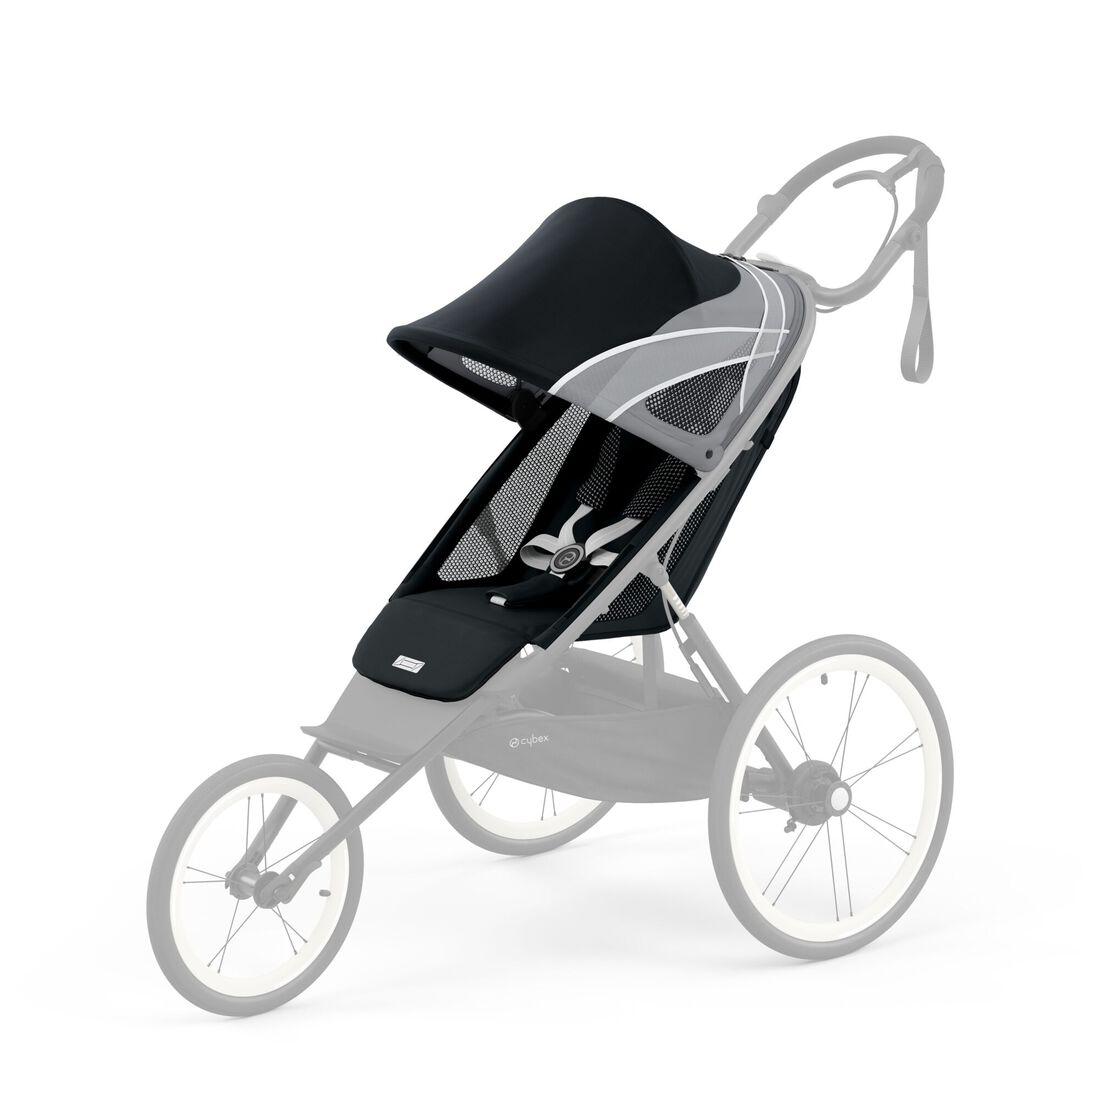 CYBEX Avi Seat Pack - All Black in All Black large image number 1